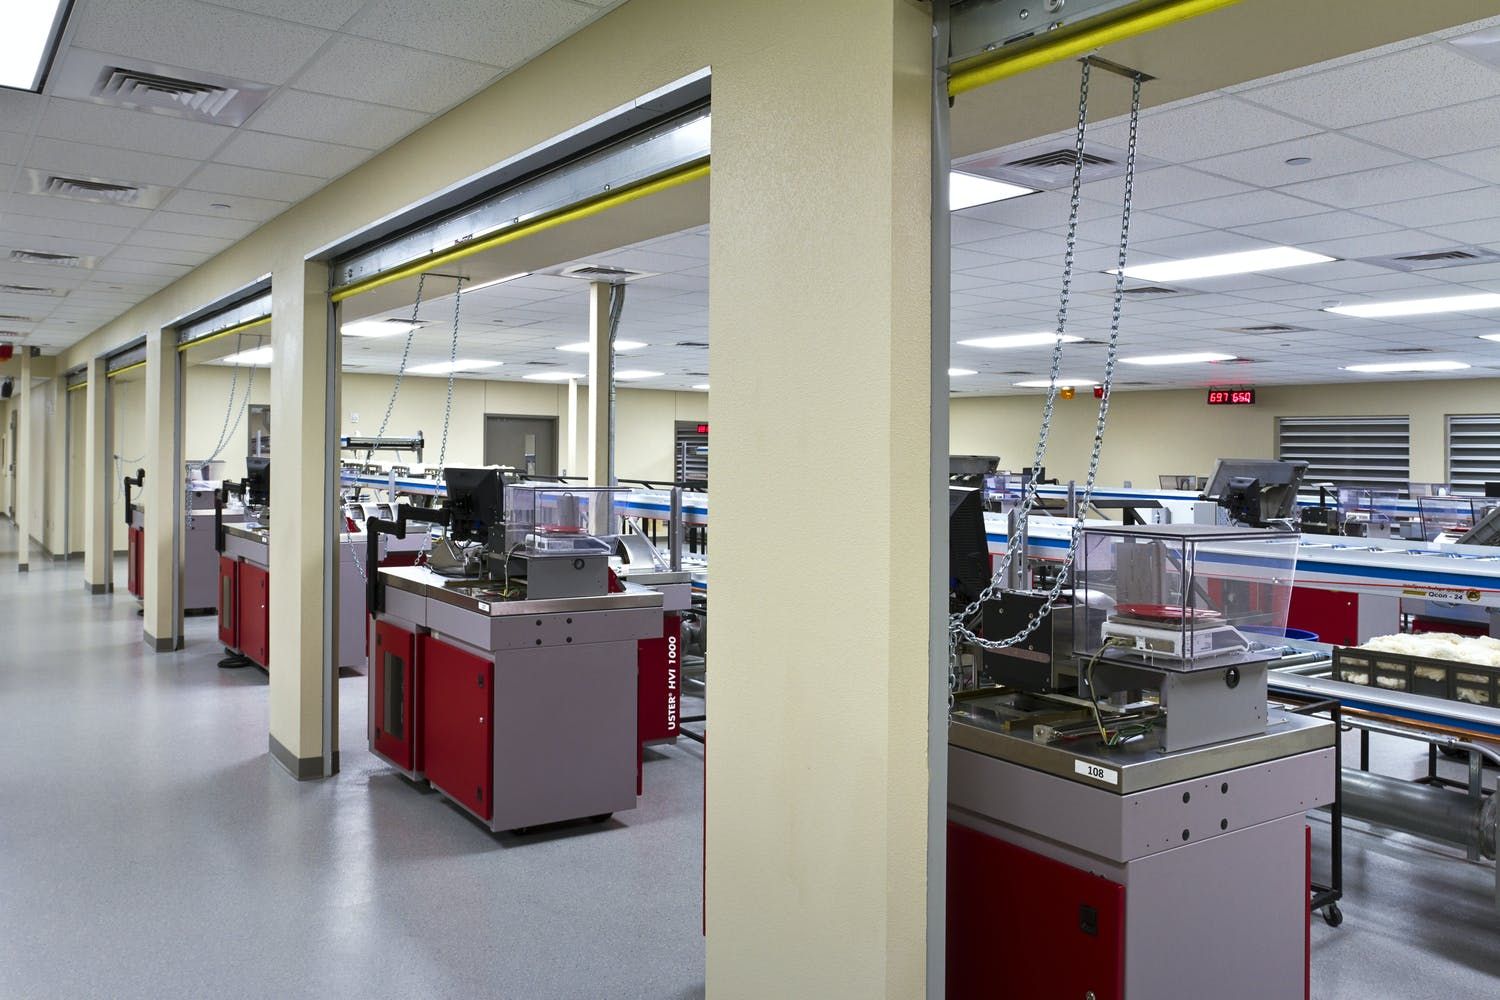 U S D A A M S Cotton Classing Facility At Texas Tech University Gallery Images